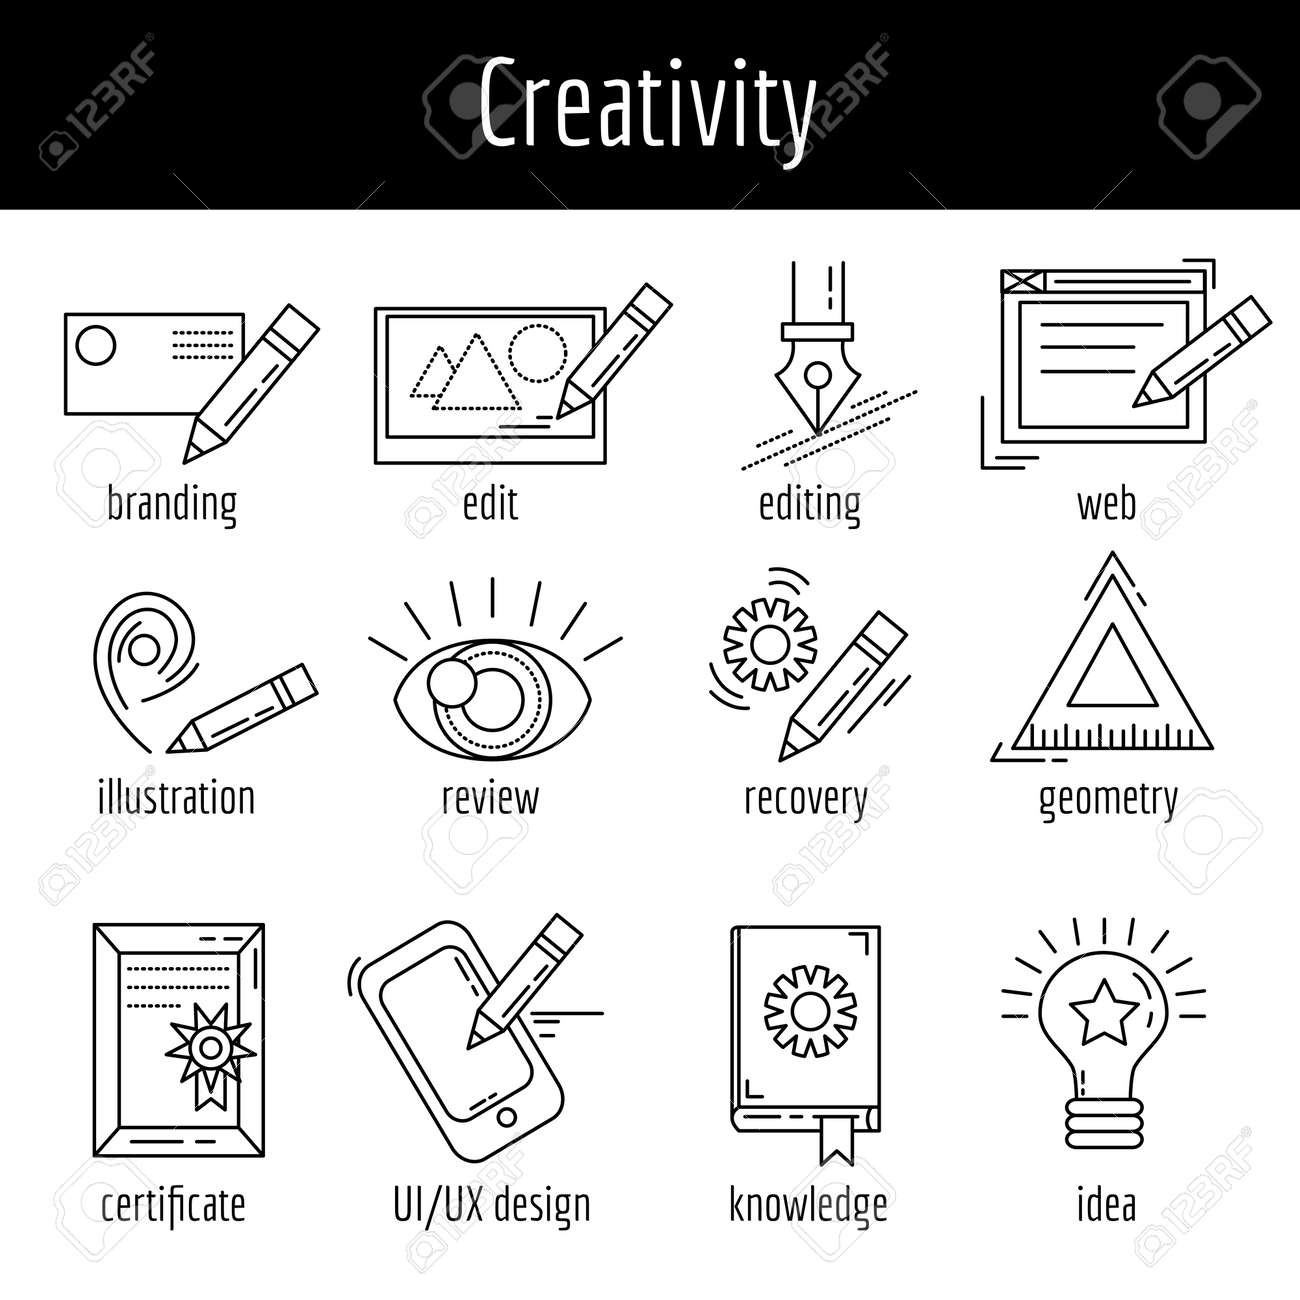 Vector set of icons about creative process Linear images - 51573200